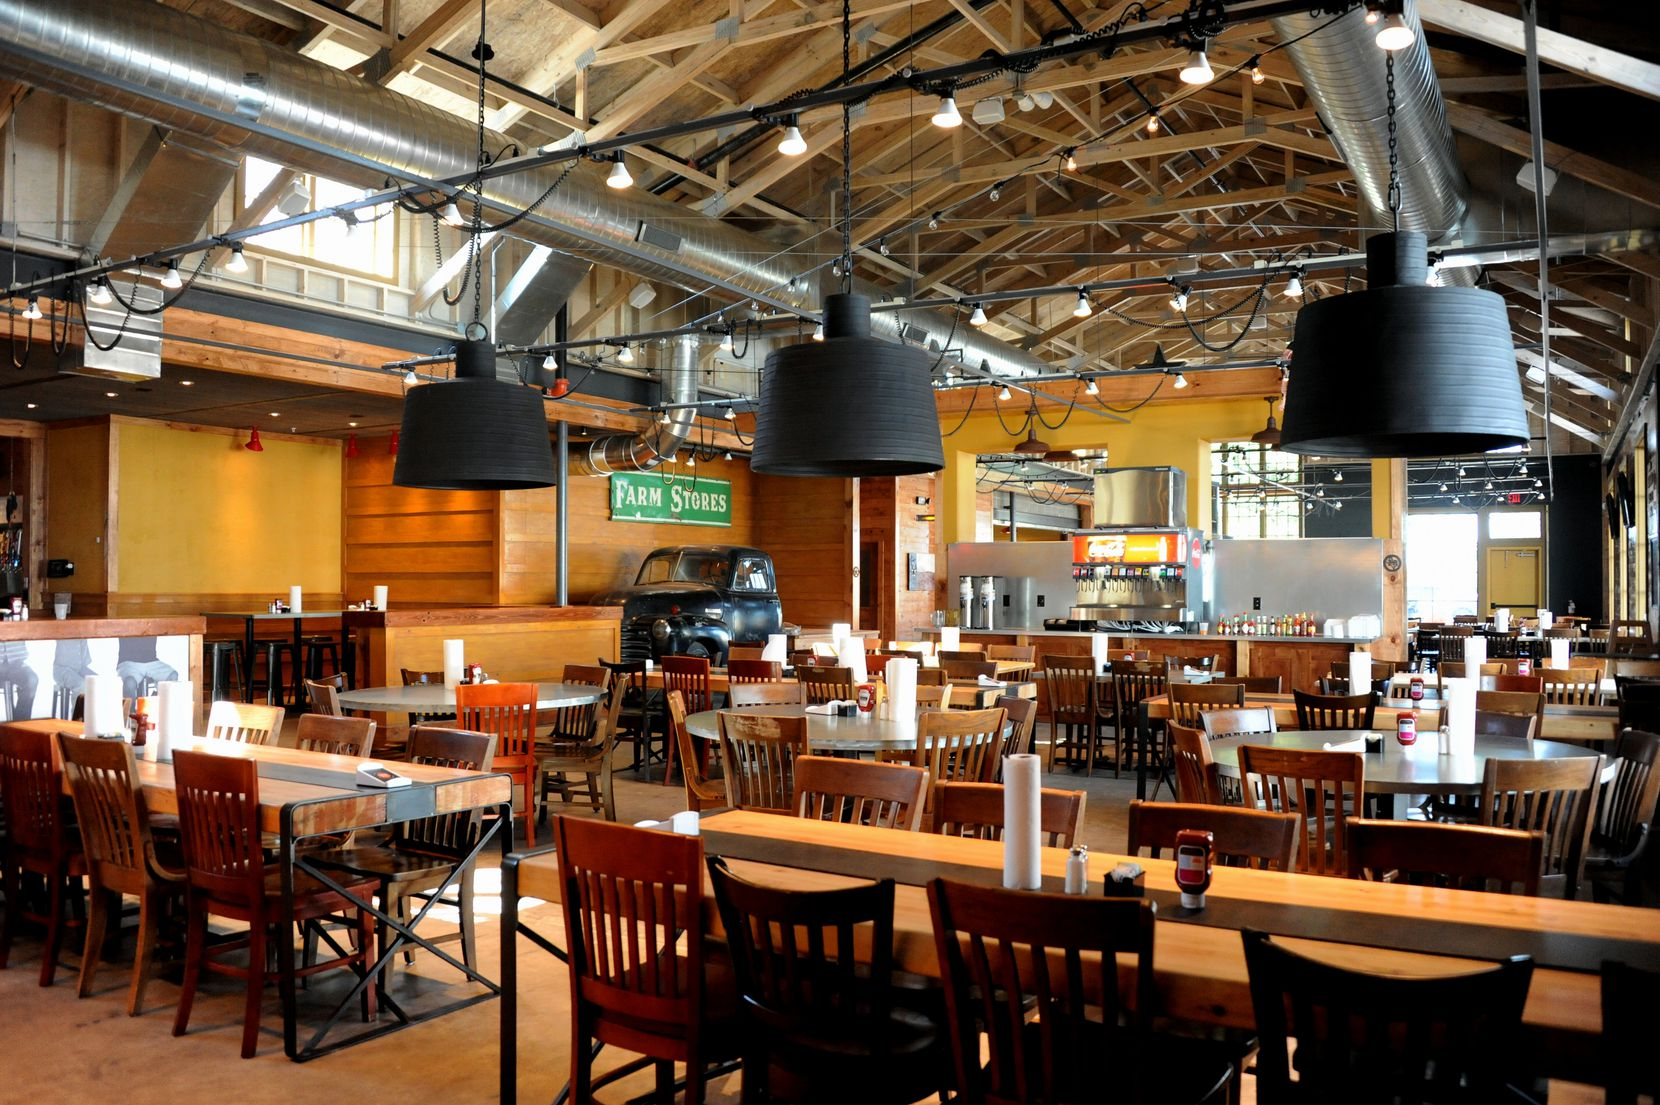 The 10,000-square-foot space seats 290 guests.